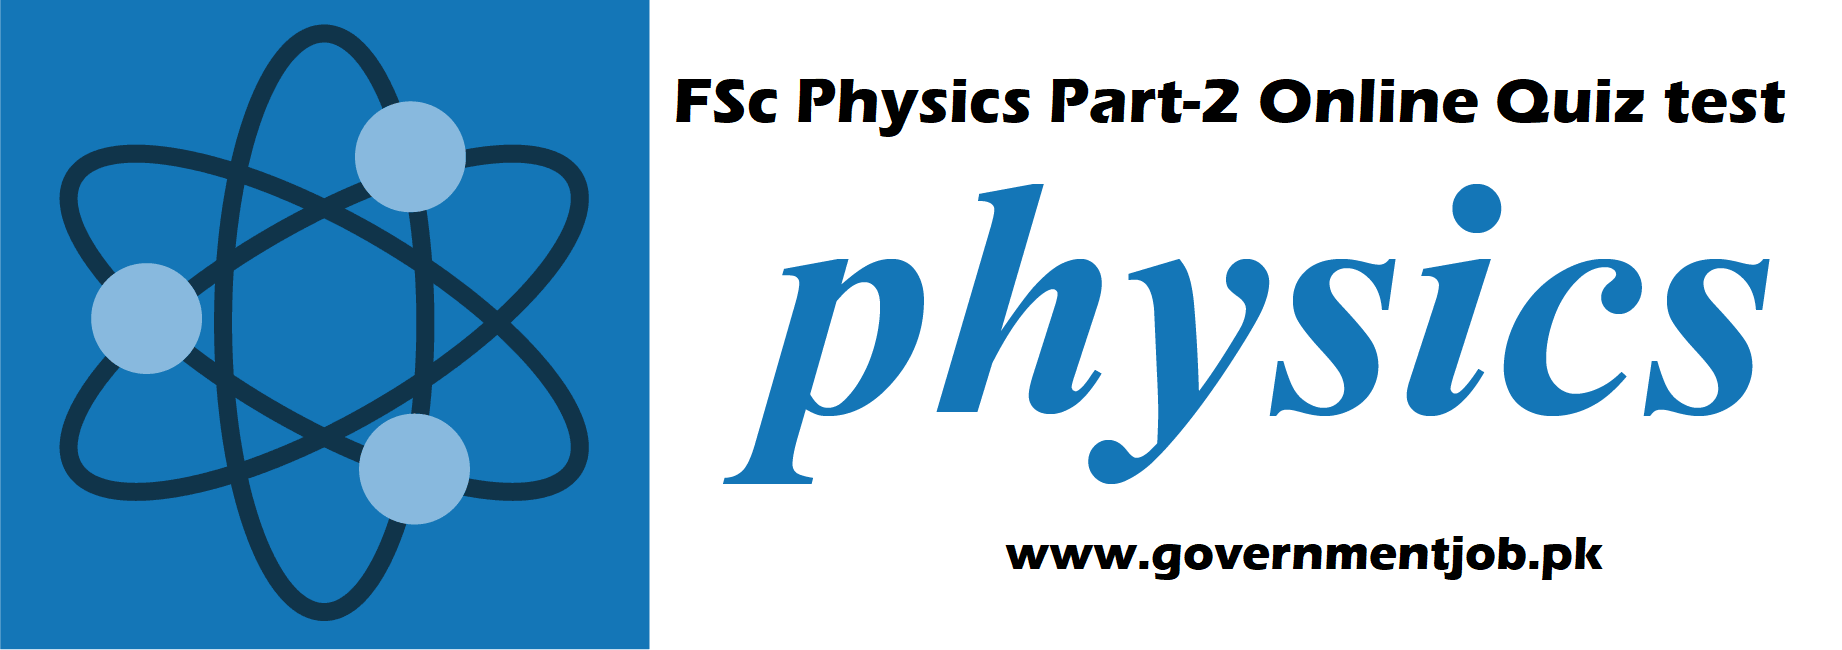 Physics FSc Par 2 Online mcqs Test governmentjob.pk